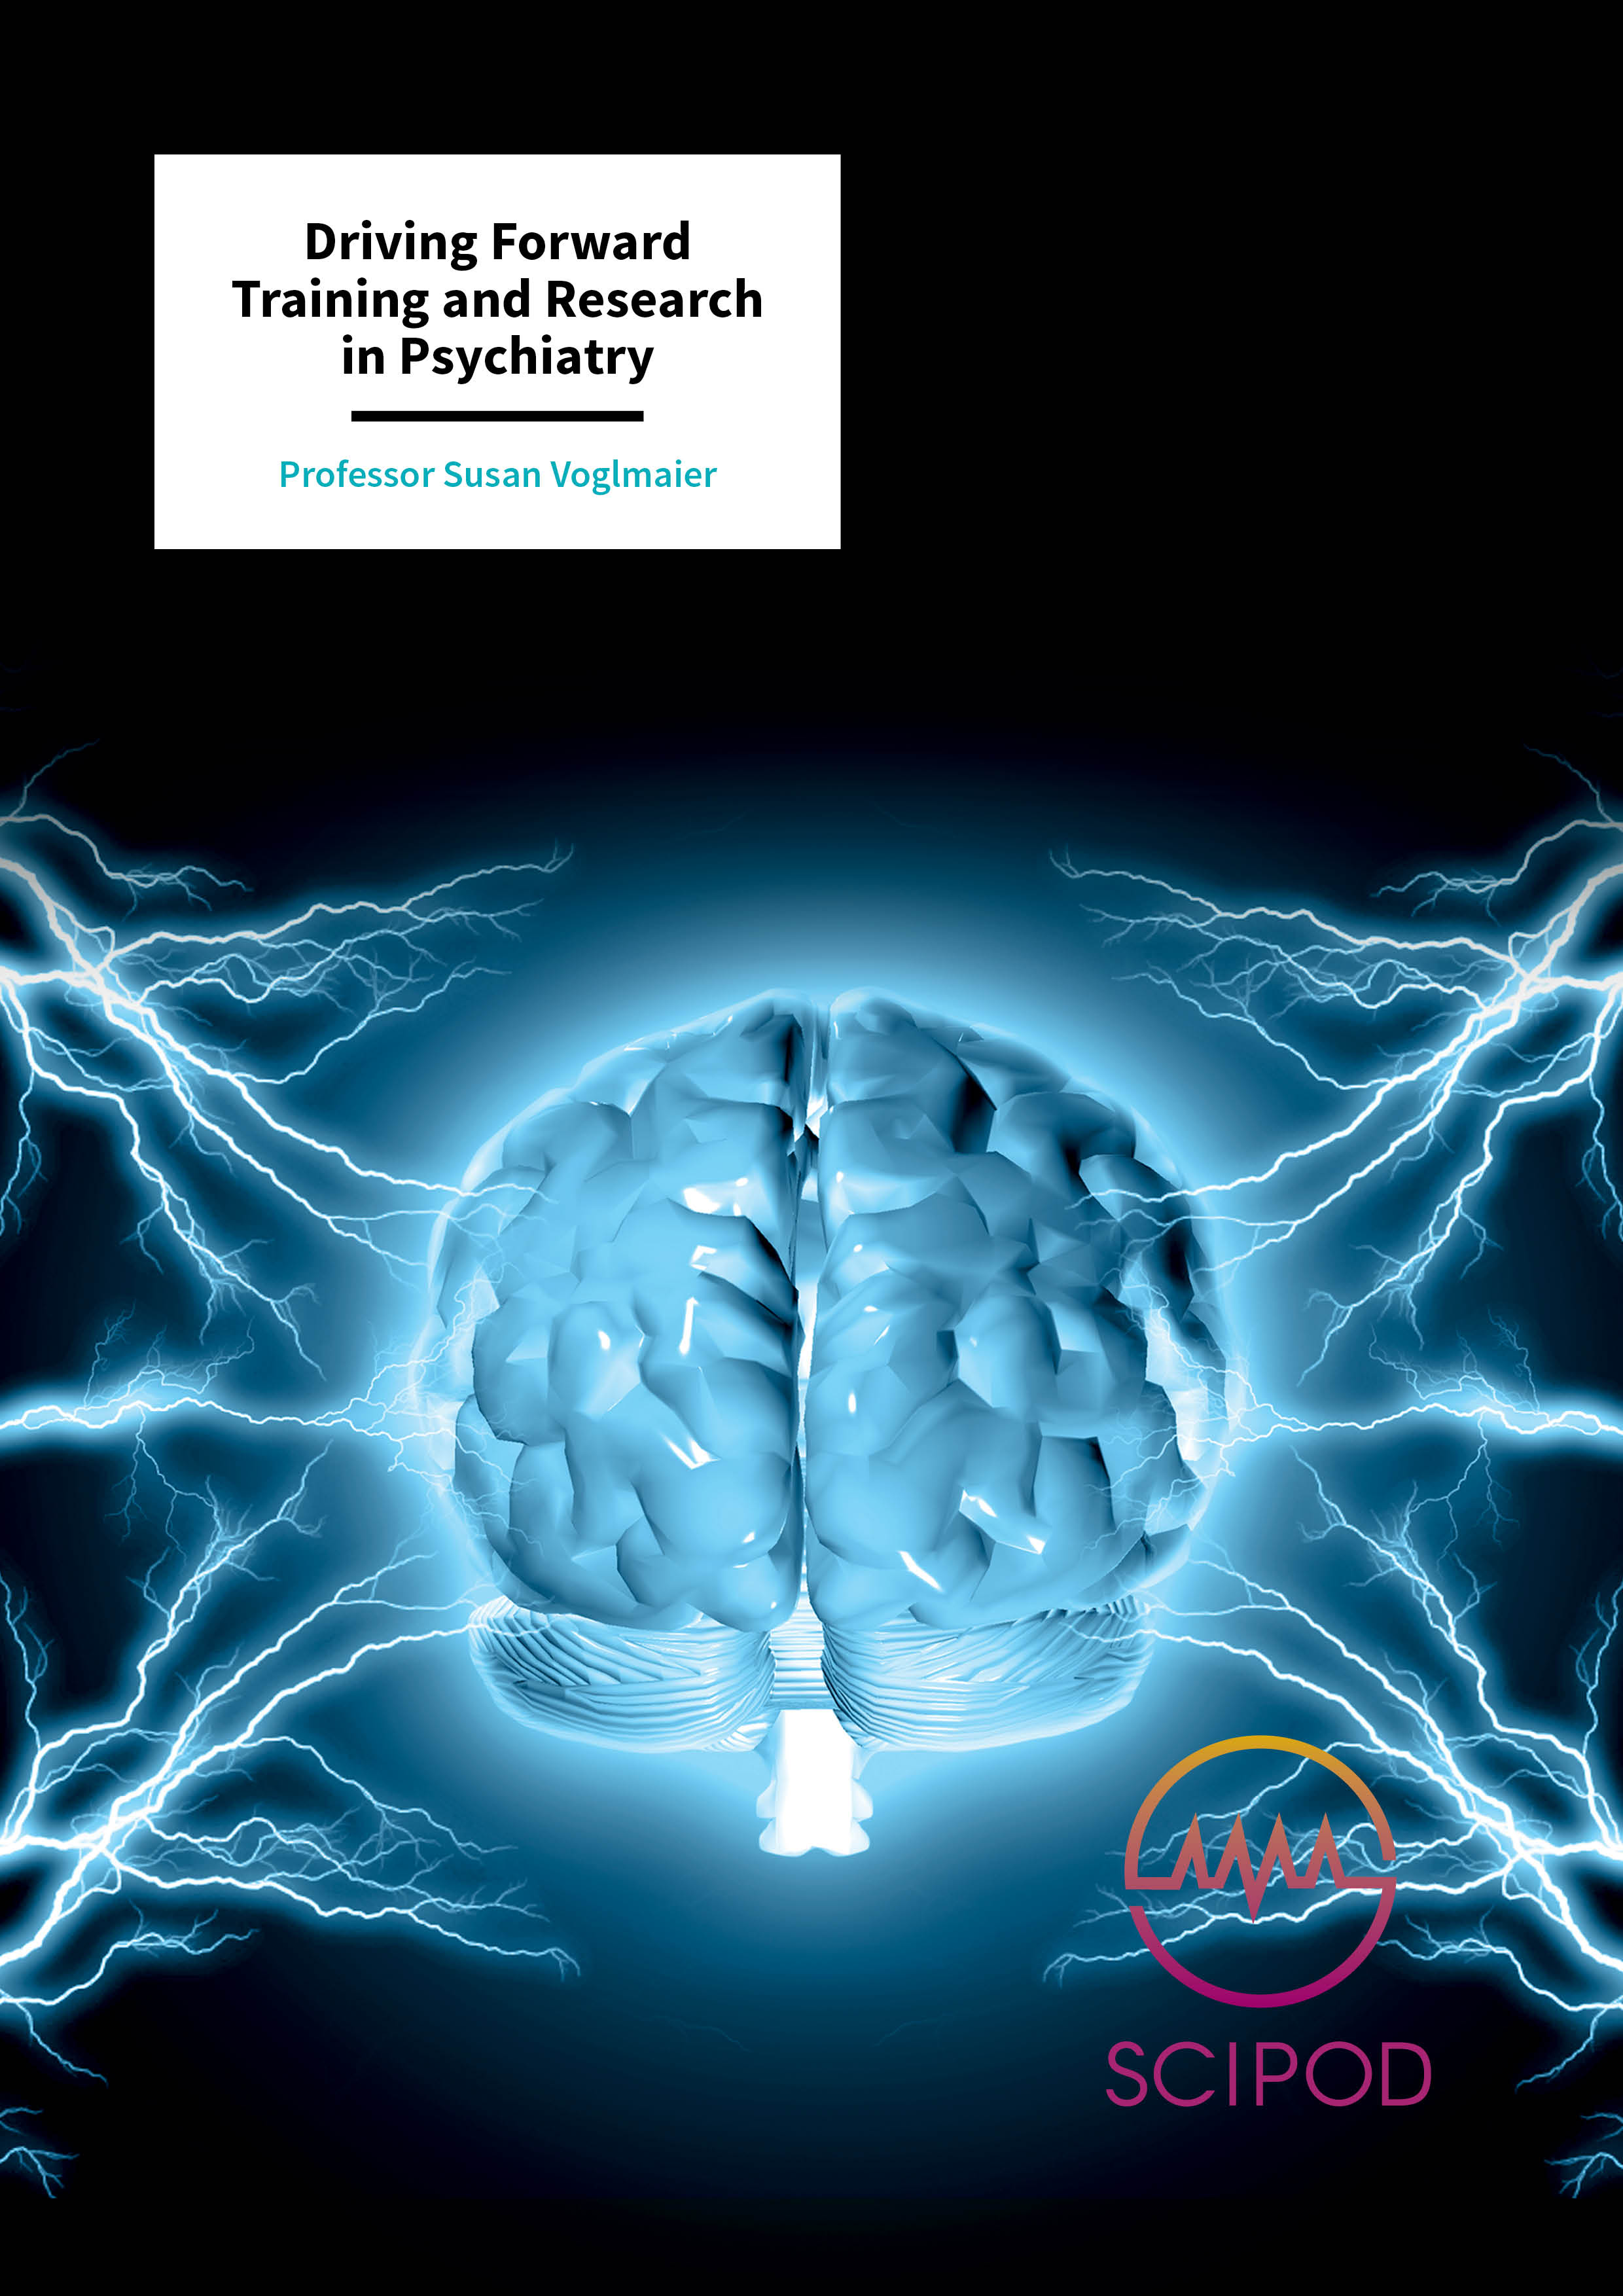 Driving Forward Training and Research in Psychiatry – Dr Susan Voglmaier, University of California